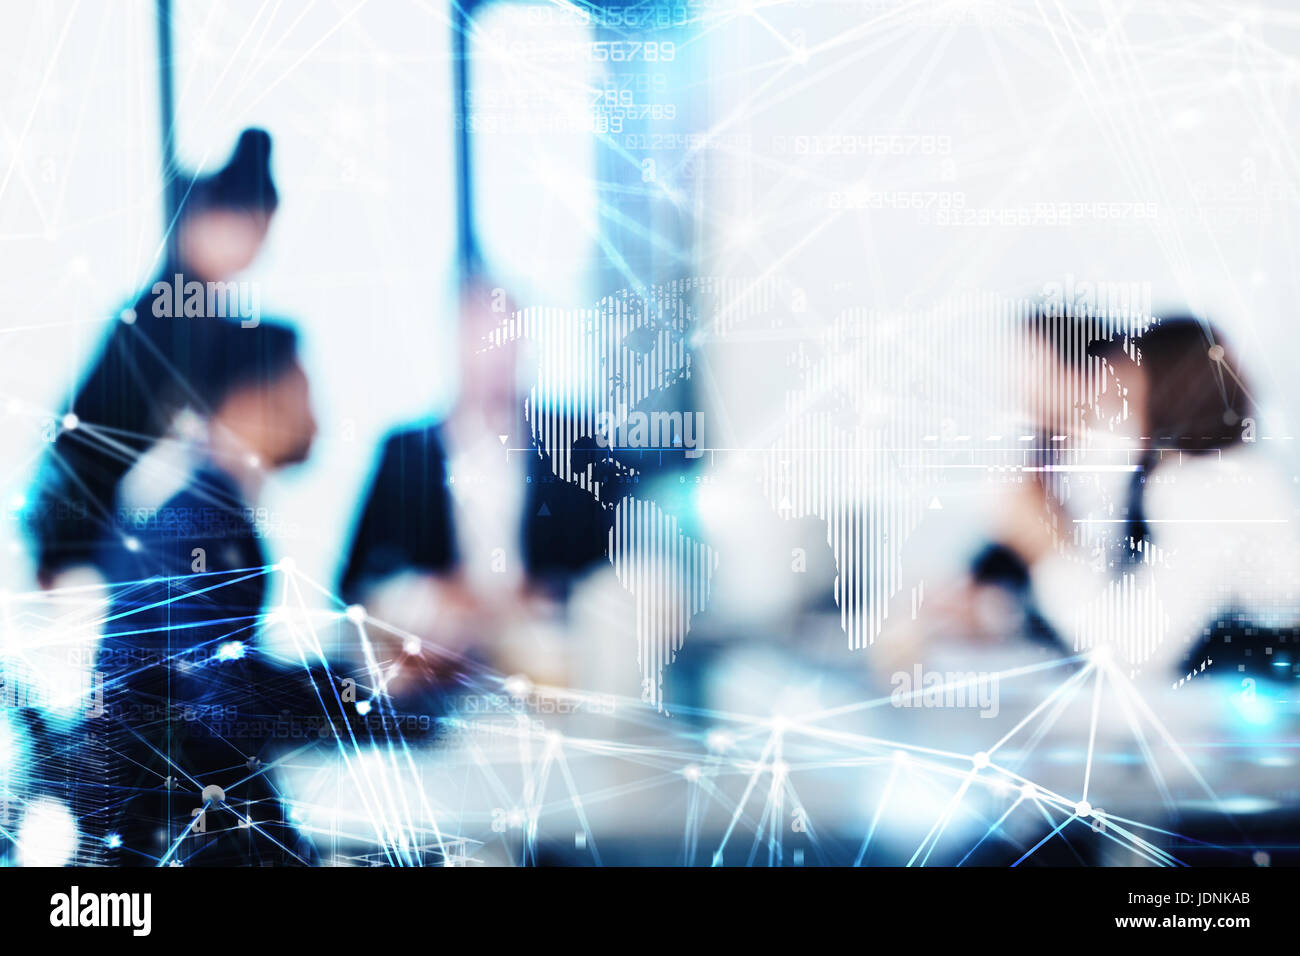 Blurred background with futuristic effect of business people - Stock Image